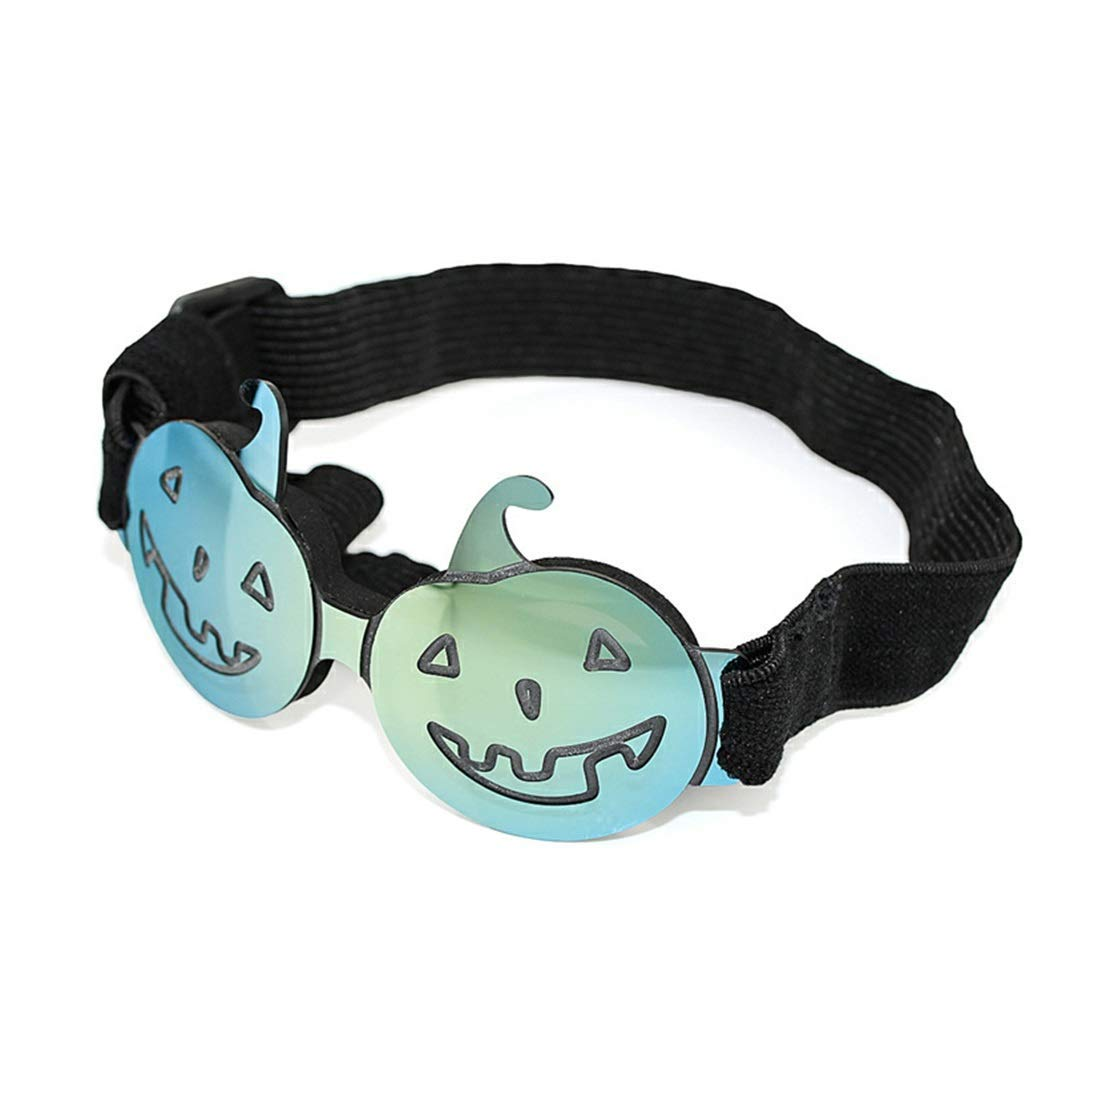 YUHAO Pet Sunglasses Halloween Funny Colorful Pumpkin Glasses Small and Medium Dogs Cats Apply,Colorful